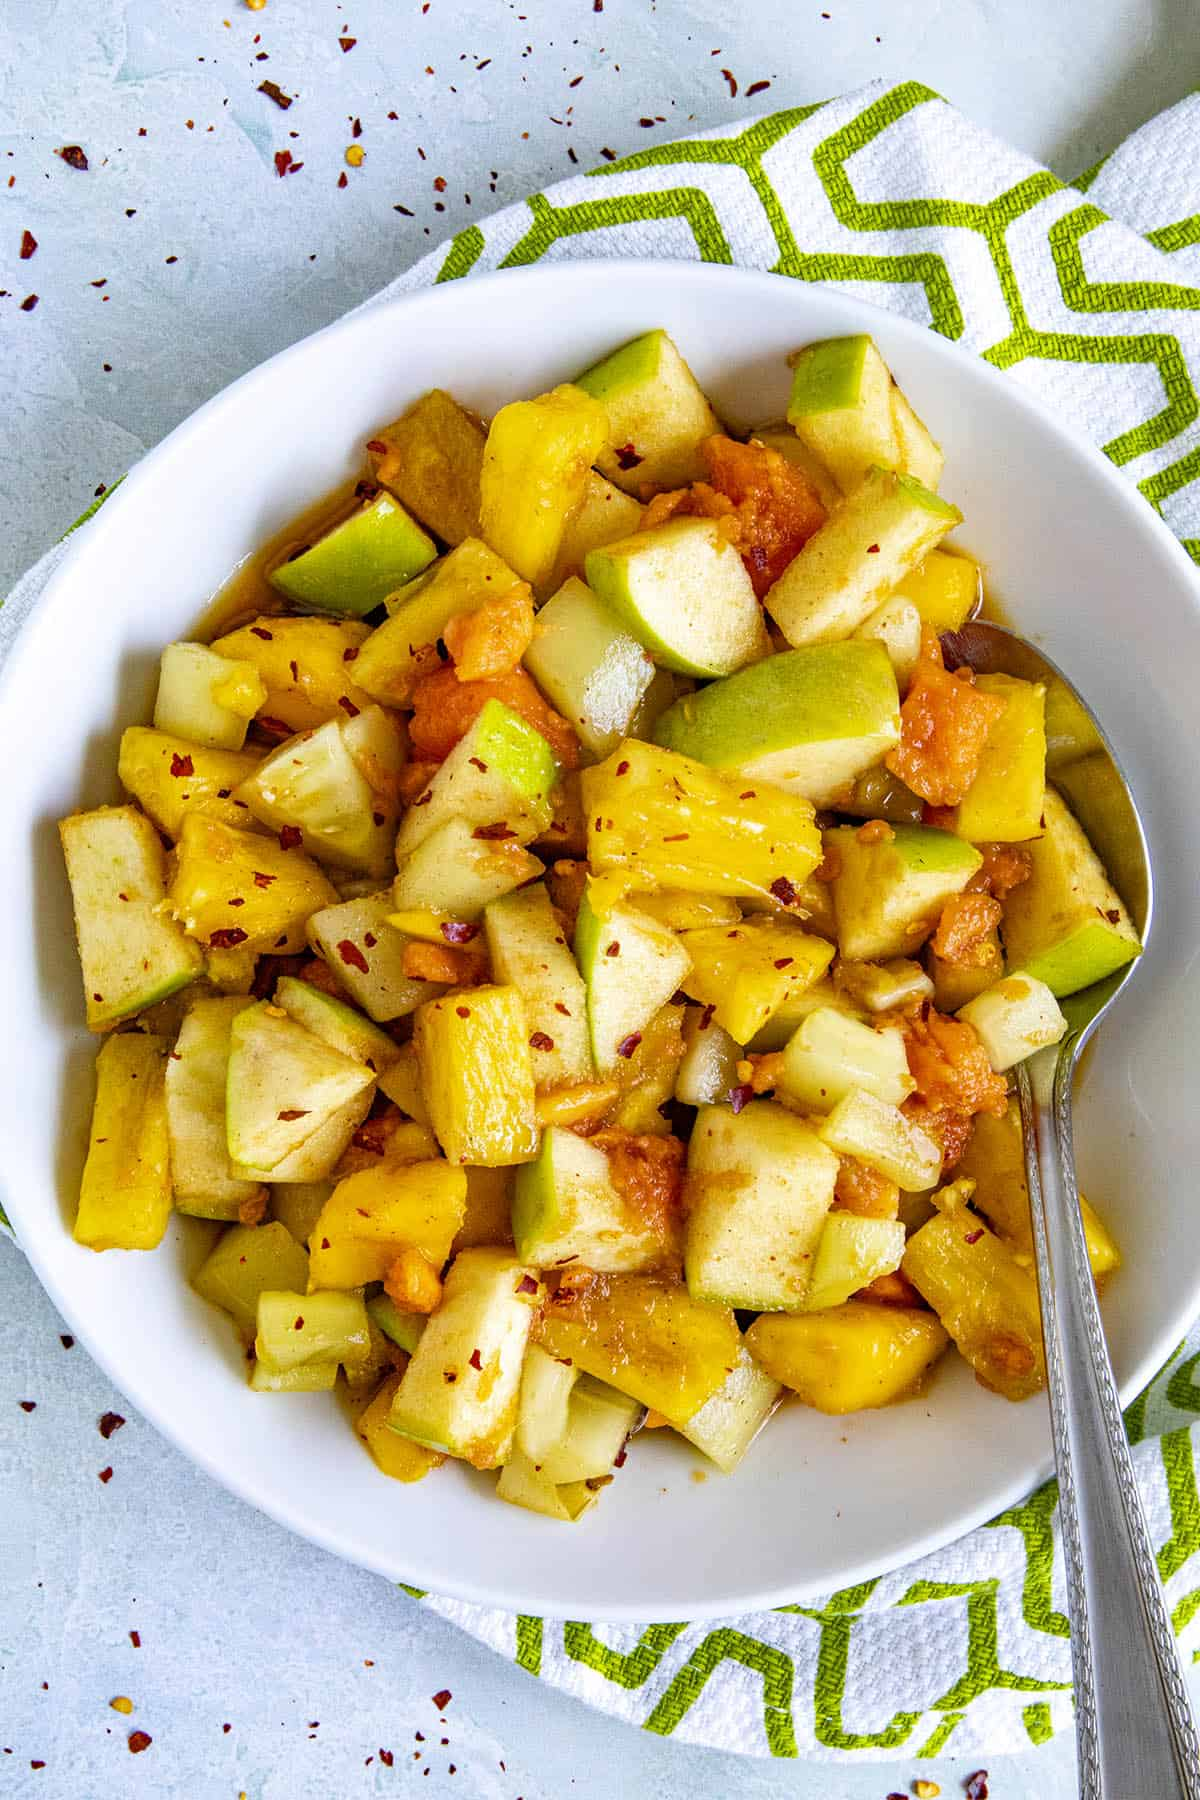 Rujak (Indonesian fruit salad) in a bowl with a spoonful of fruit